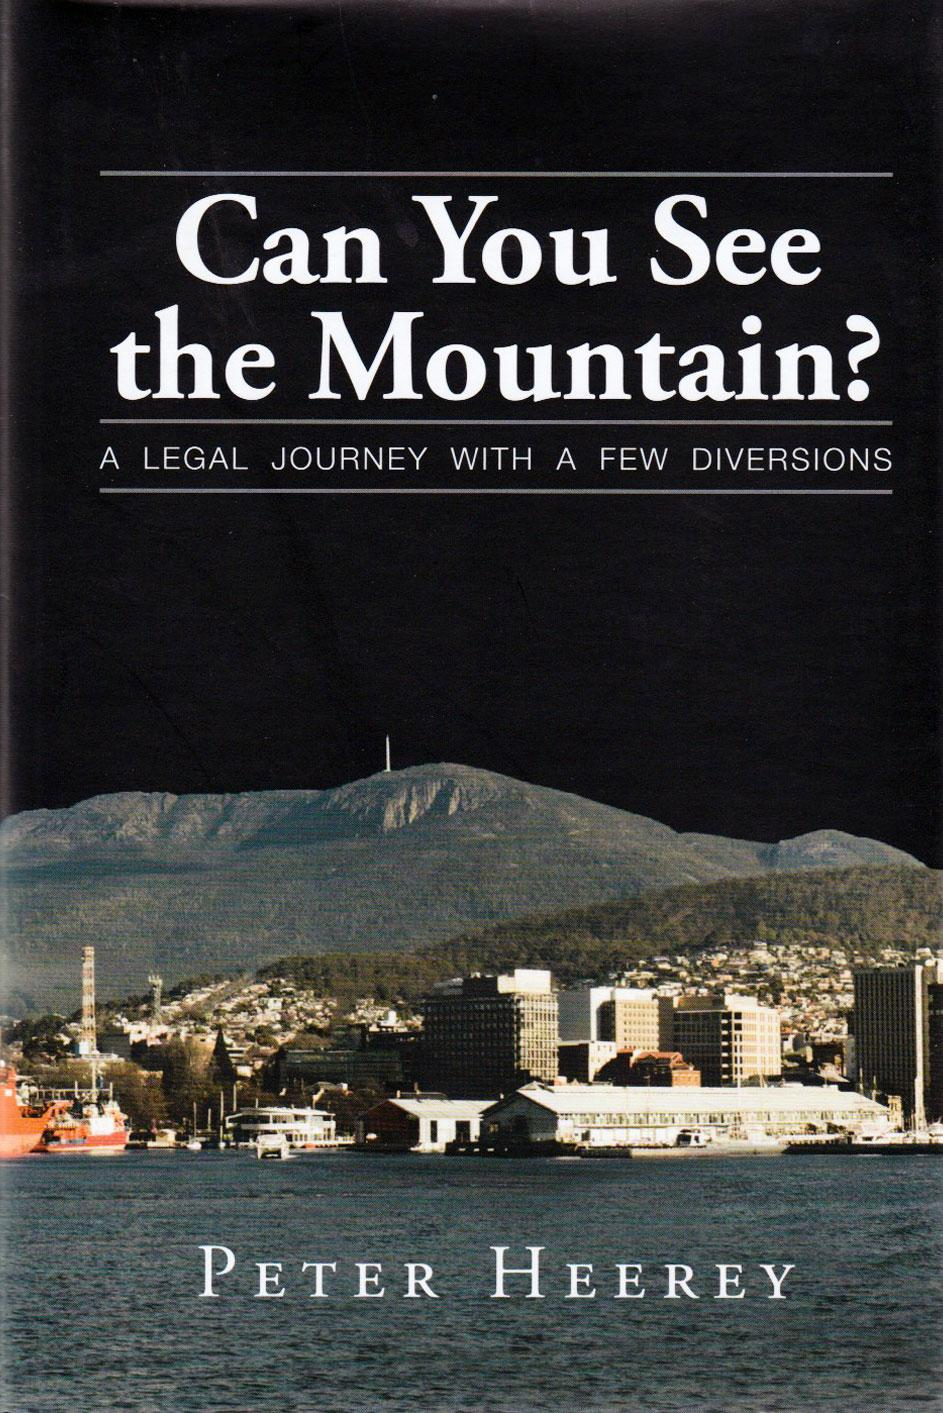 Can you see the mountain? A Legal Journey with a Few Diversions